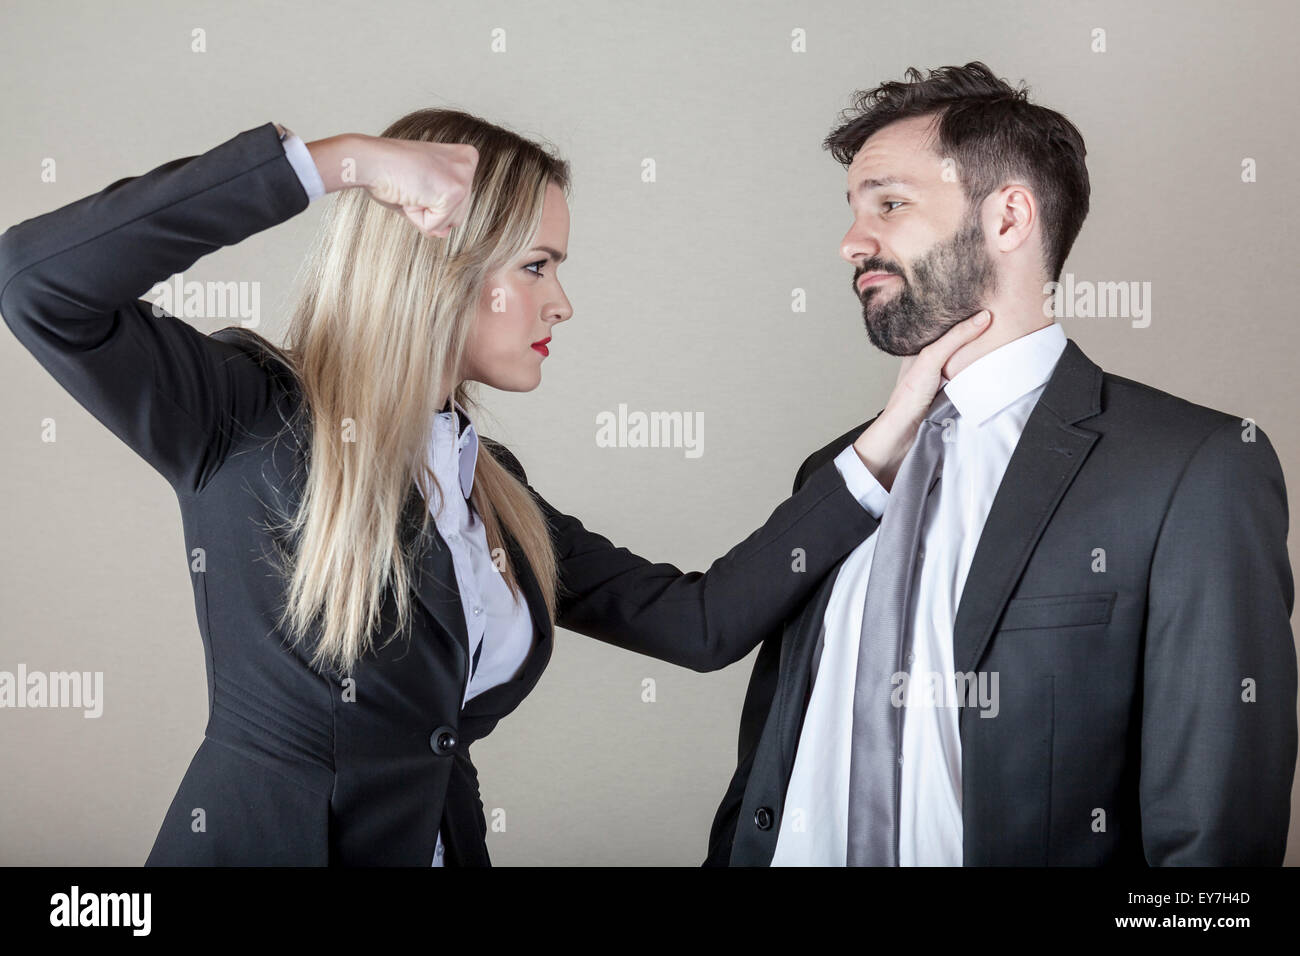 Business woman strangling a business man - Stock Image